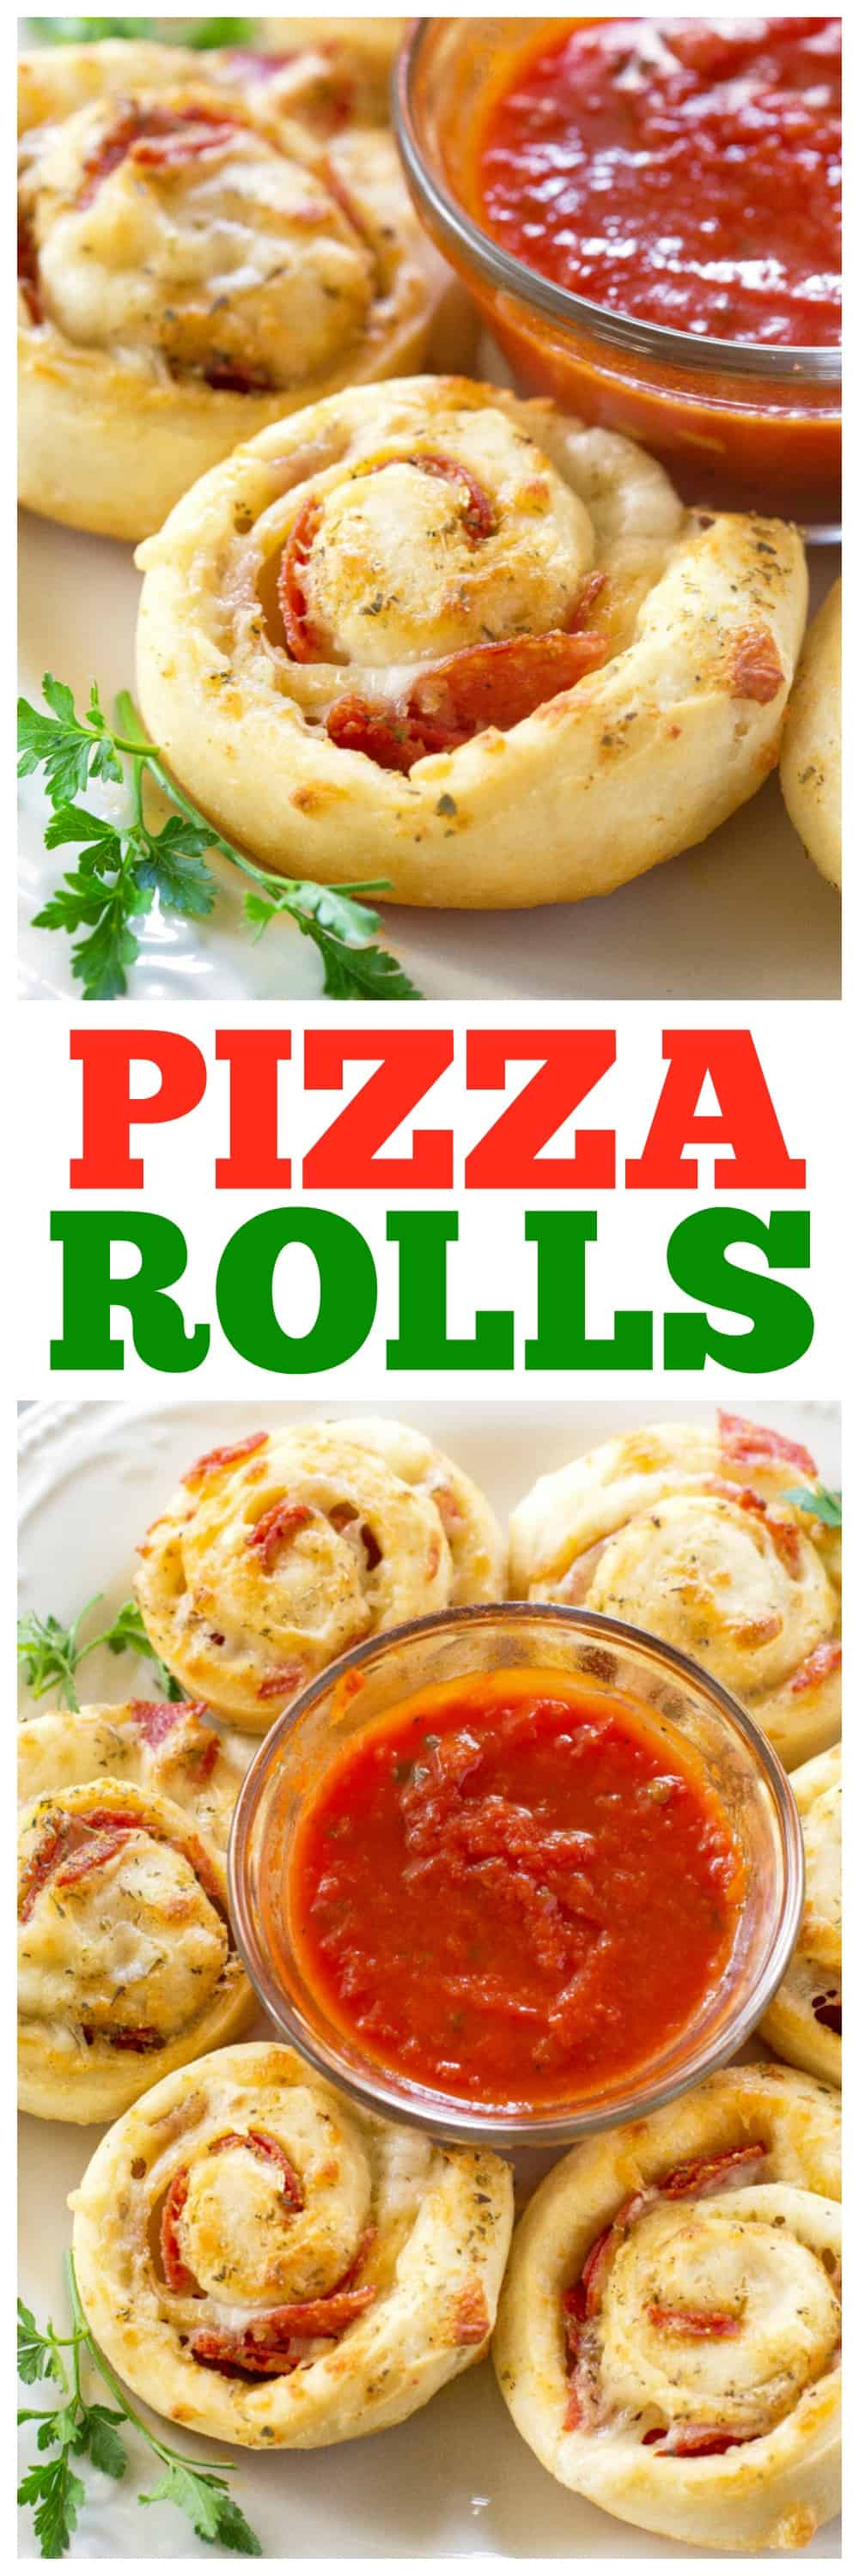 Pizza Rolls On a plate with marinara